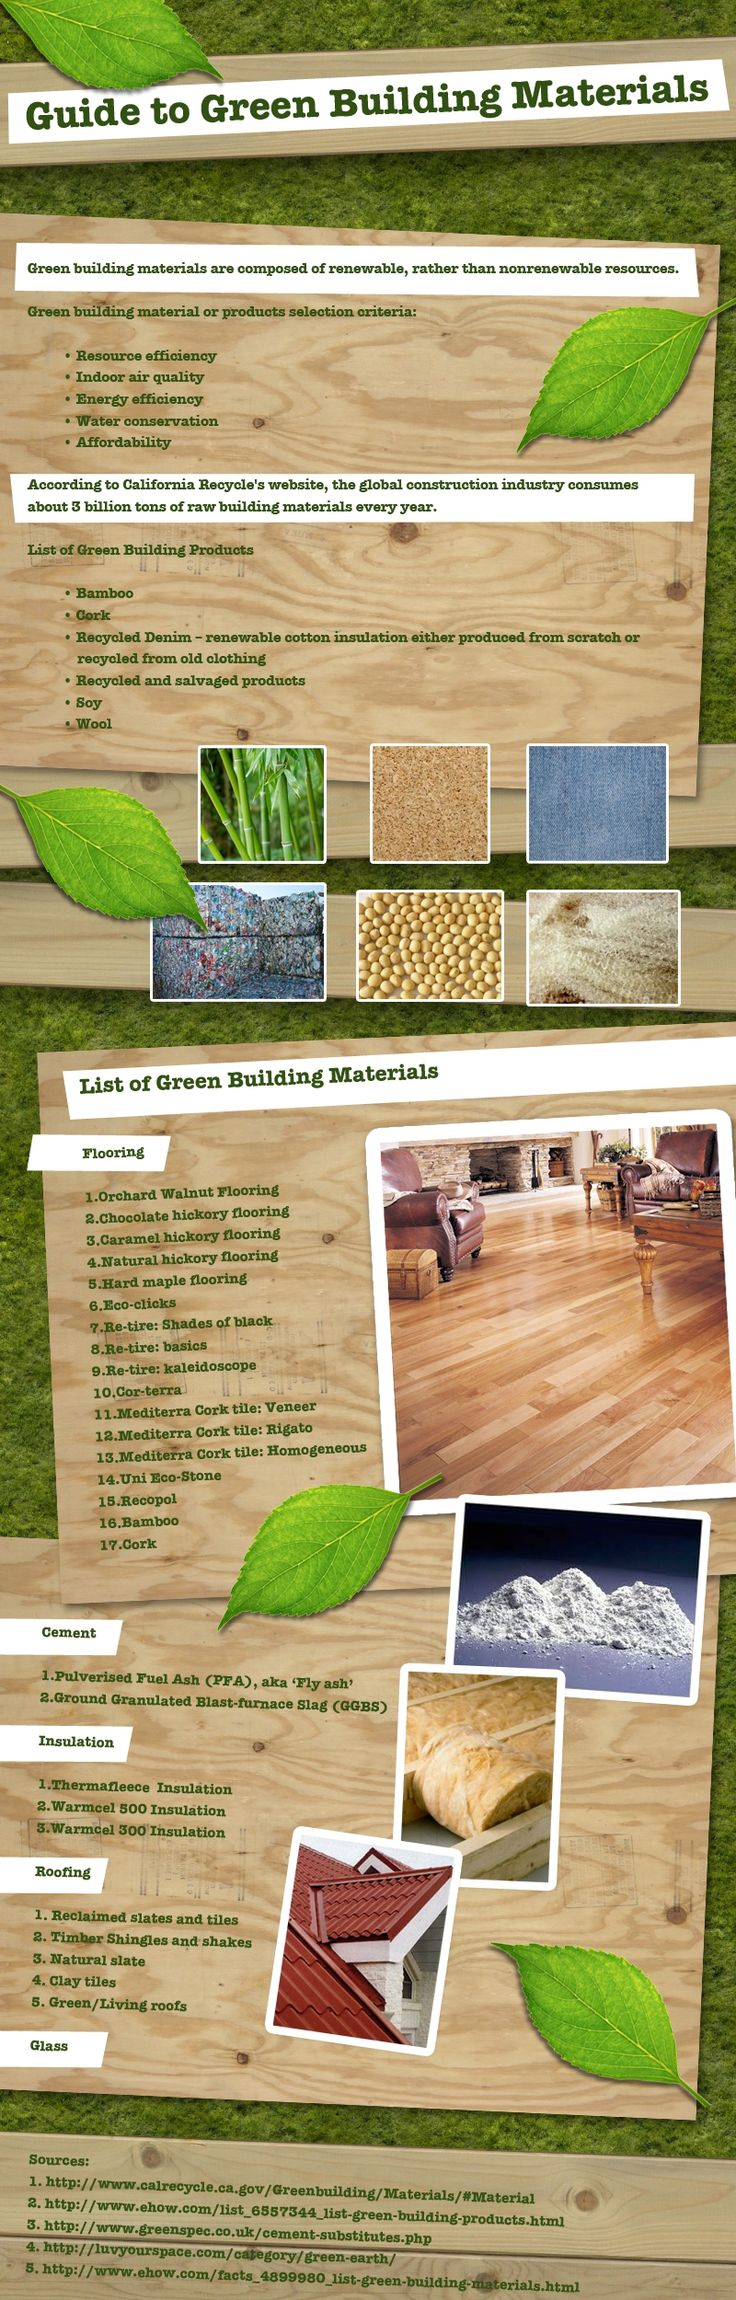 Sustainable building materials energy systems for Sustainable roofing materials